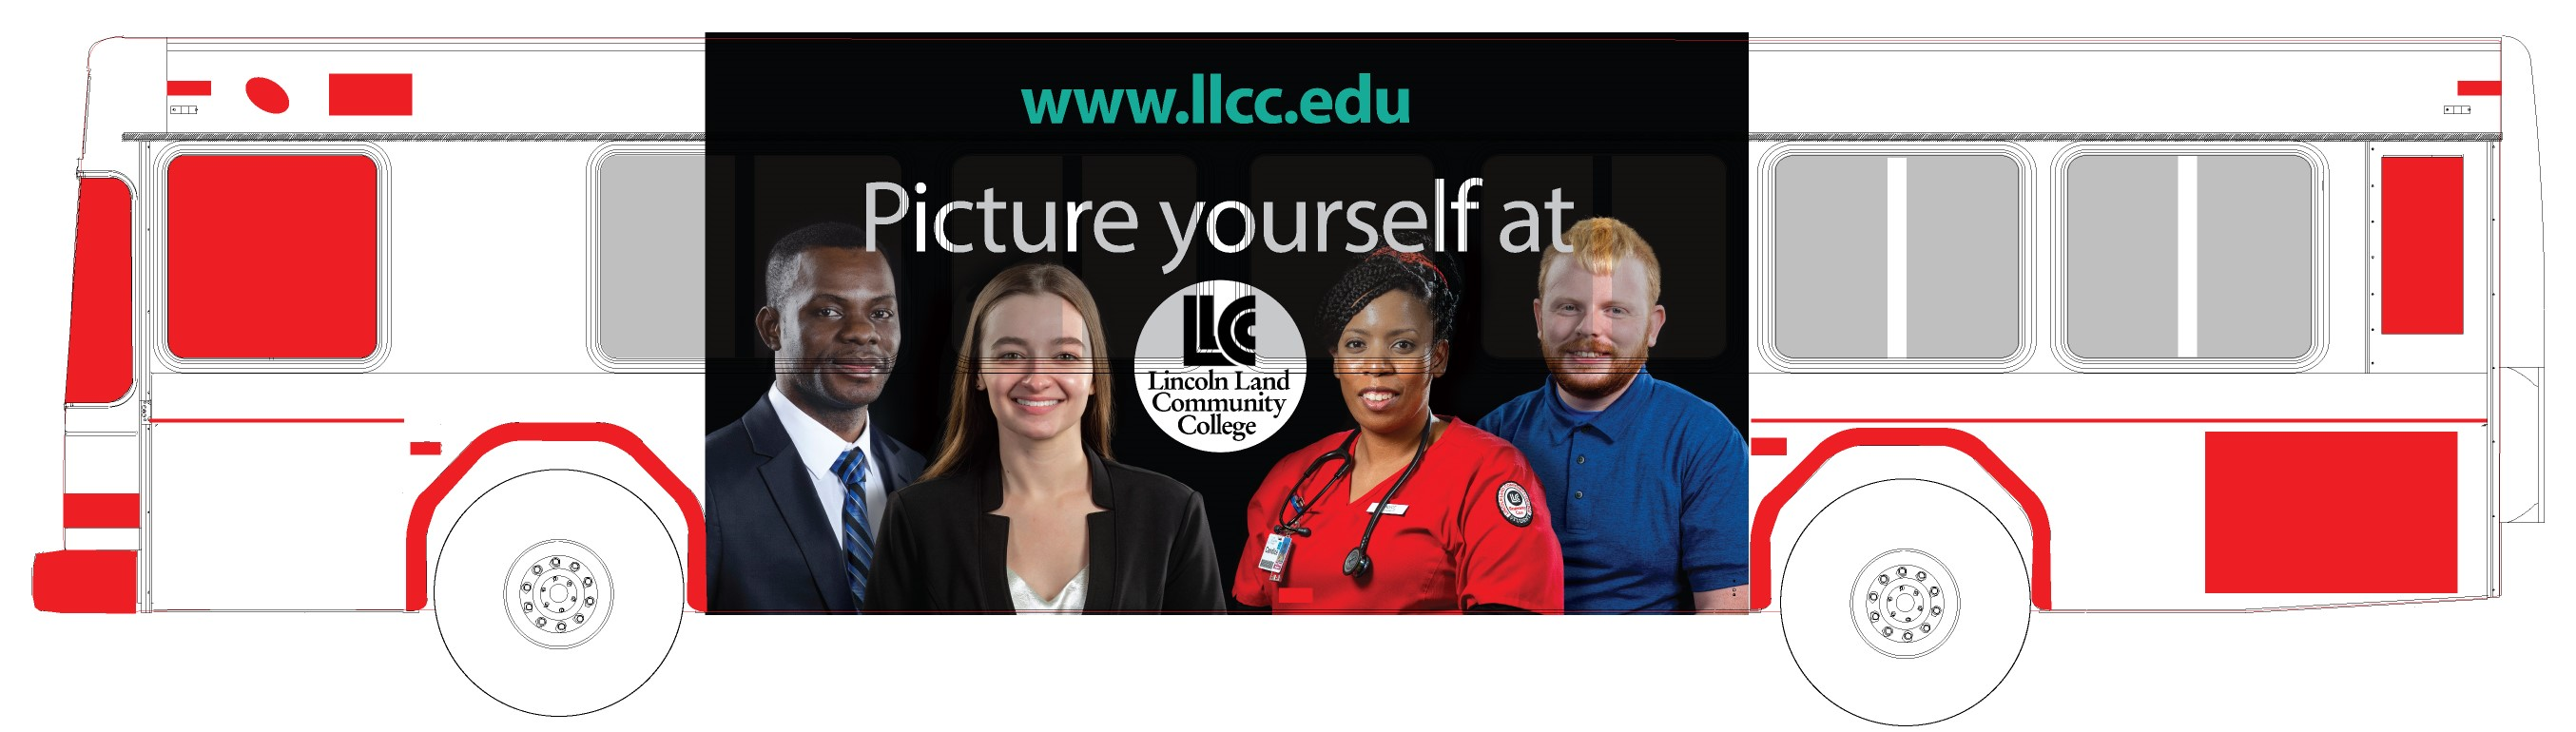 Ad on bus. www.llcc.edu Picture yourself at LLCC Lincoln Land Community College